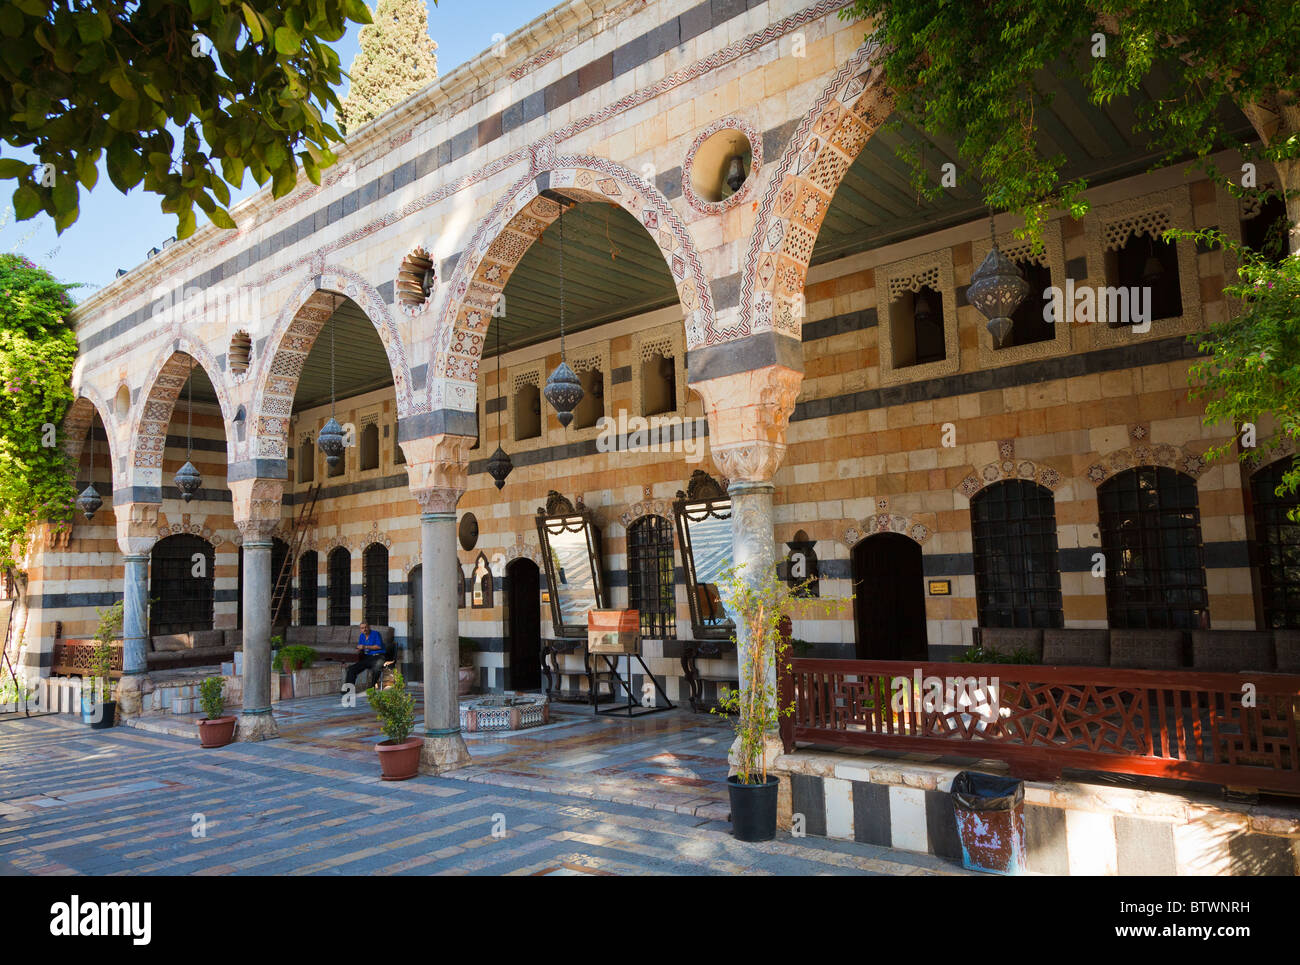 Azam Palace, Damascus, Syria Stock Photo